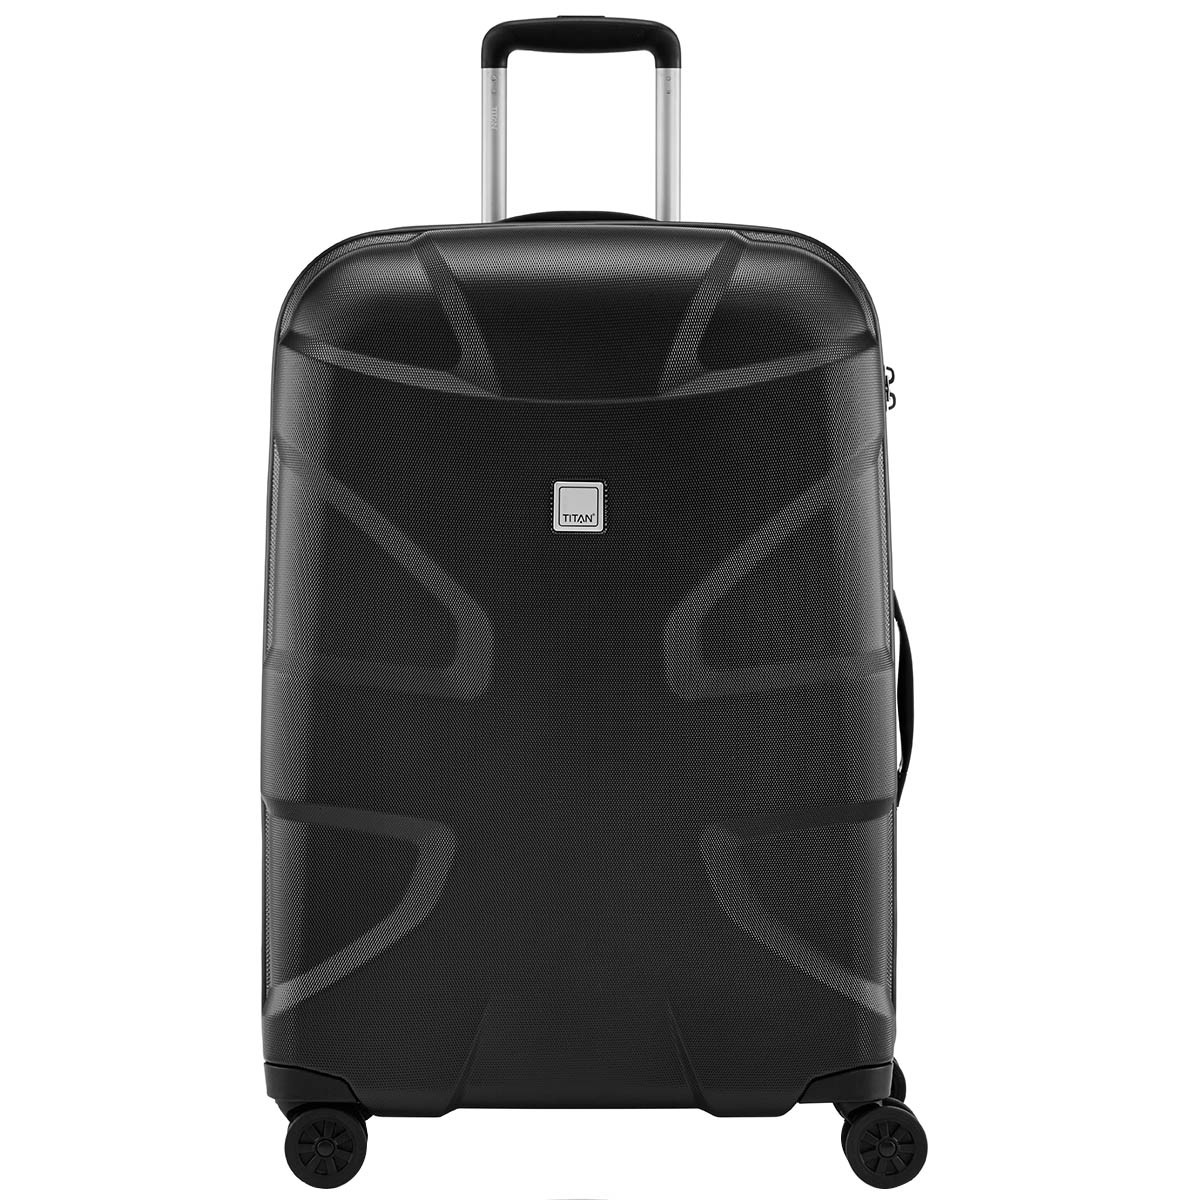 Pilotenkoffer & Trolleys Titan X2 Flash Trolley Hartschale M Reisekoffer & -taschen 71 Cm